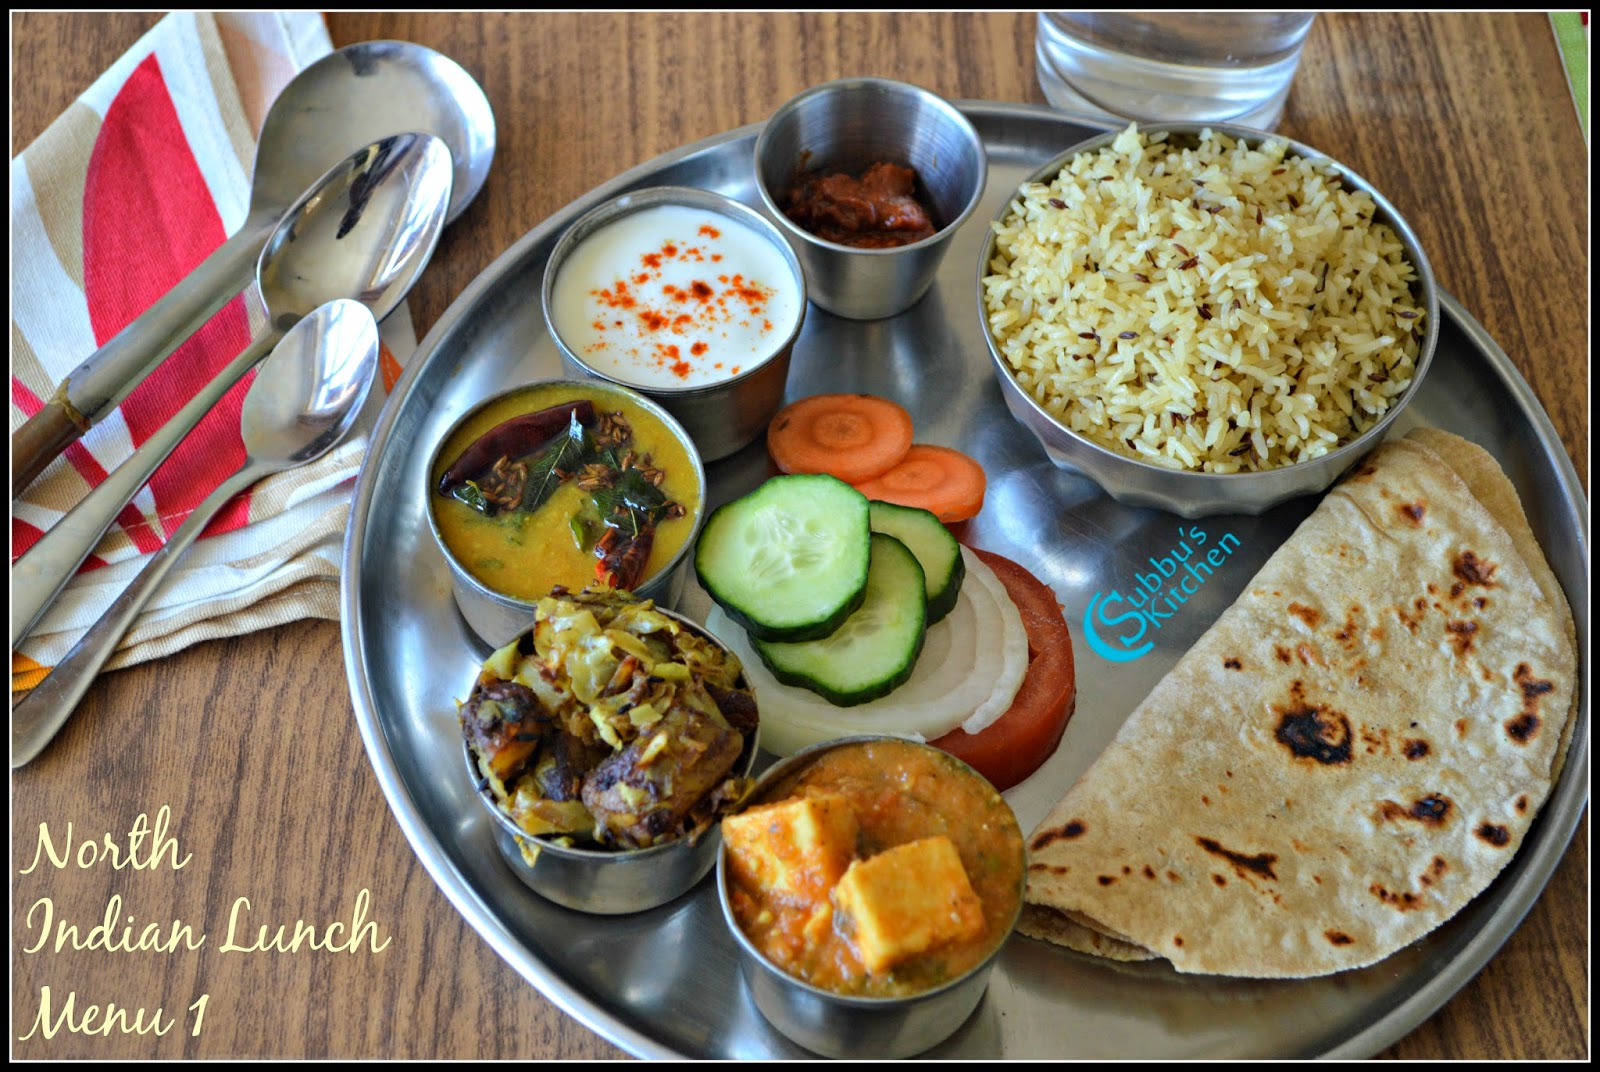 North Indian Lunch Menu 1 Chapati Dal Tadka Mutter Paneer Aloo PattaGobhi Curry Jeera Rice Curd Salad And Pickle